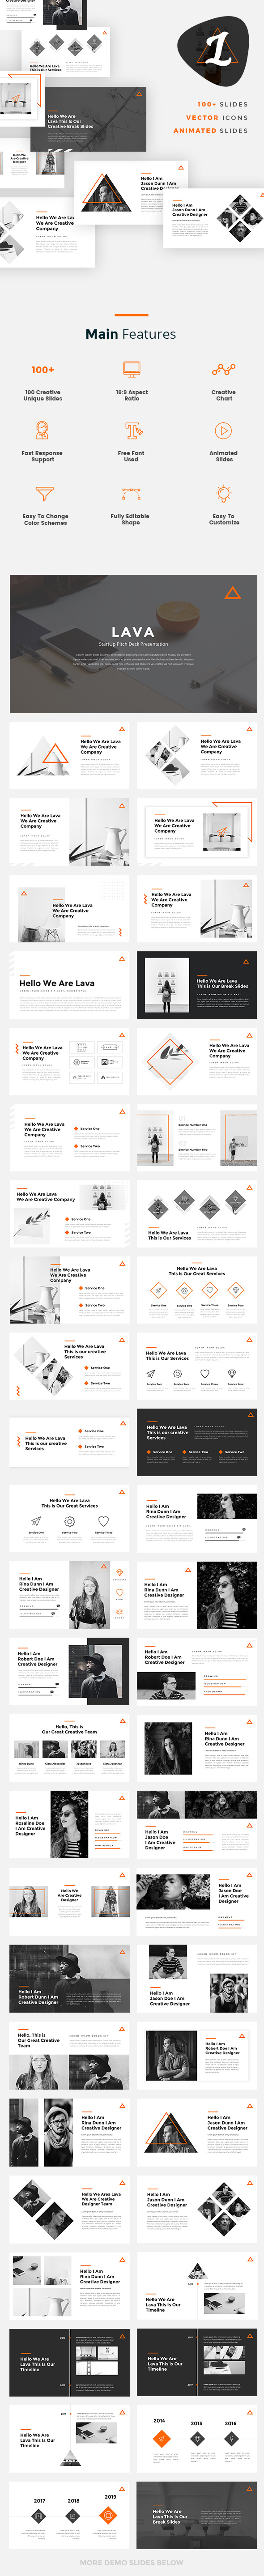 Lava - Creative Google Slides Template - Google Slides Presentation Templates